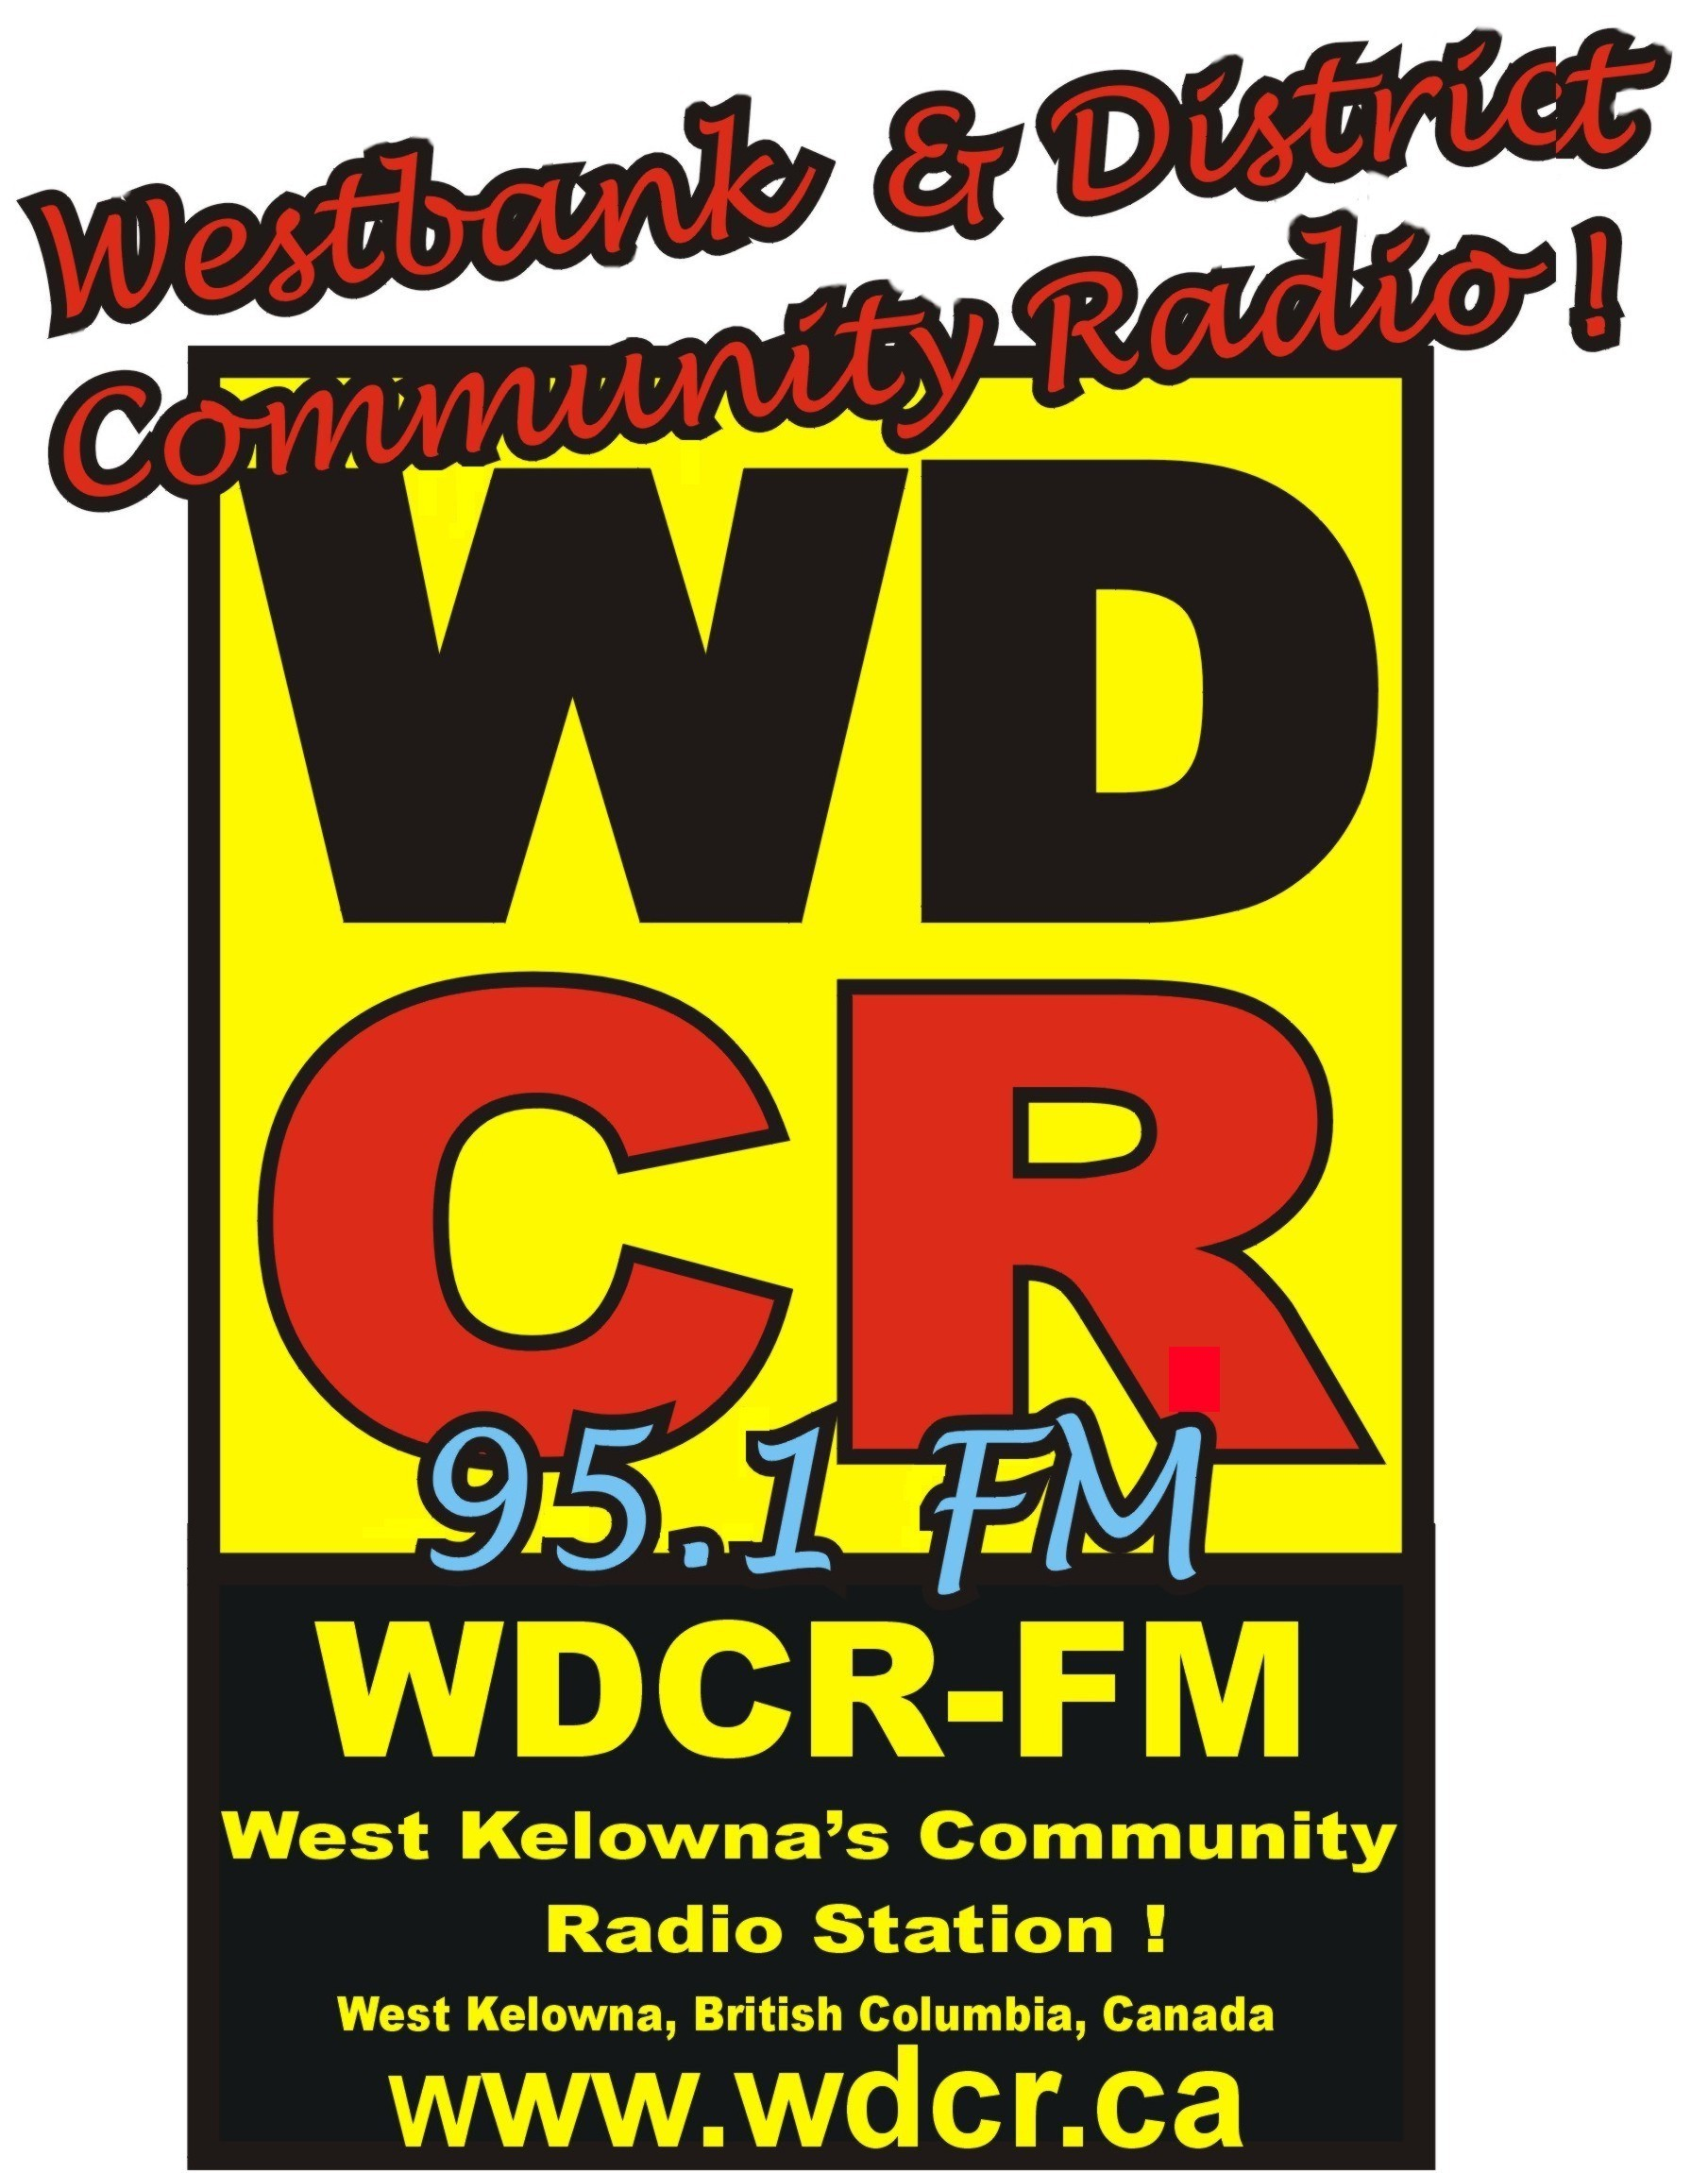 95.1 WDCR is West Kelowna's Community Radio Station! Background photo taken from Mt. Boucherie, facing Lake Okanagan, British Columbia, Canada. Photo courtesy wikipedia.org